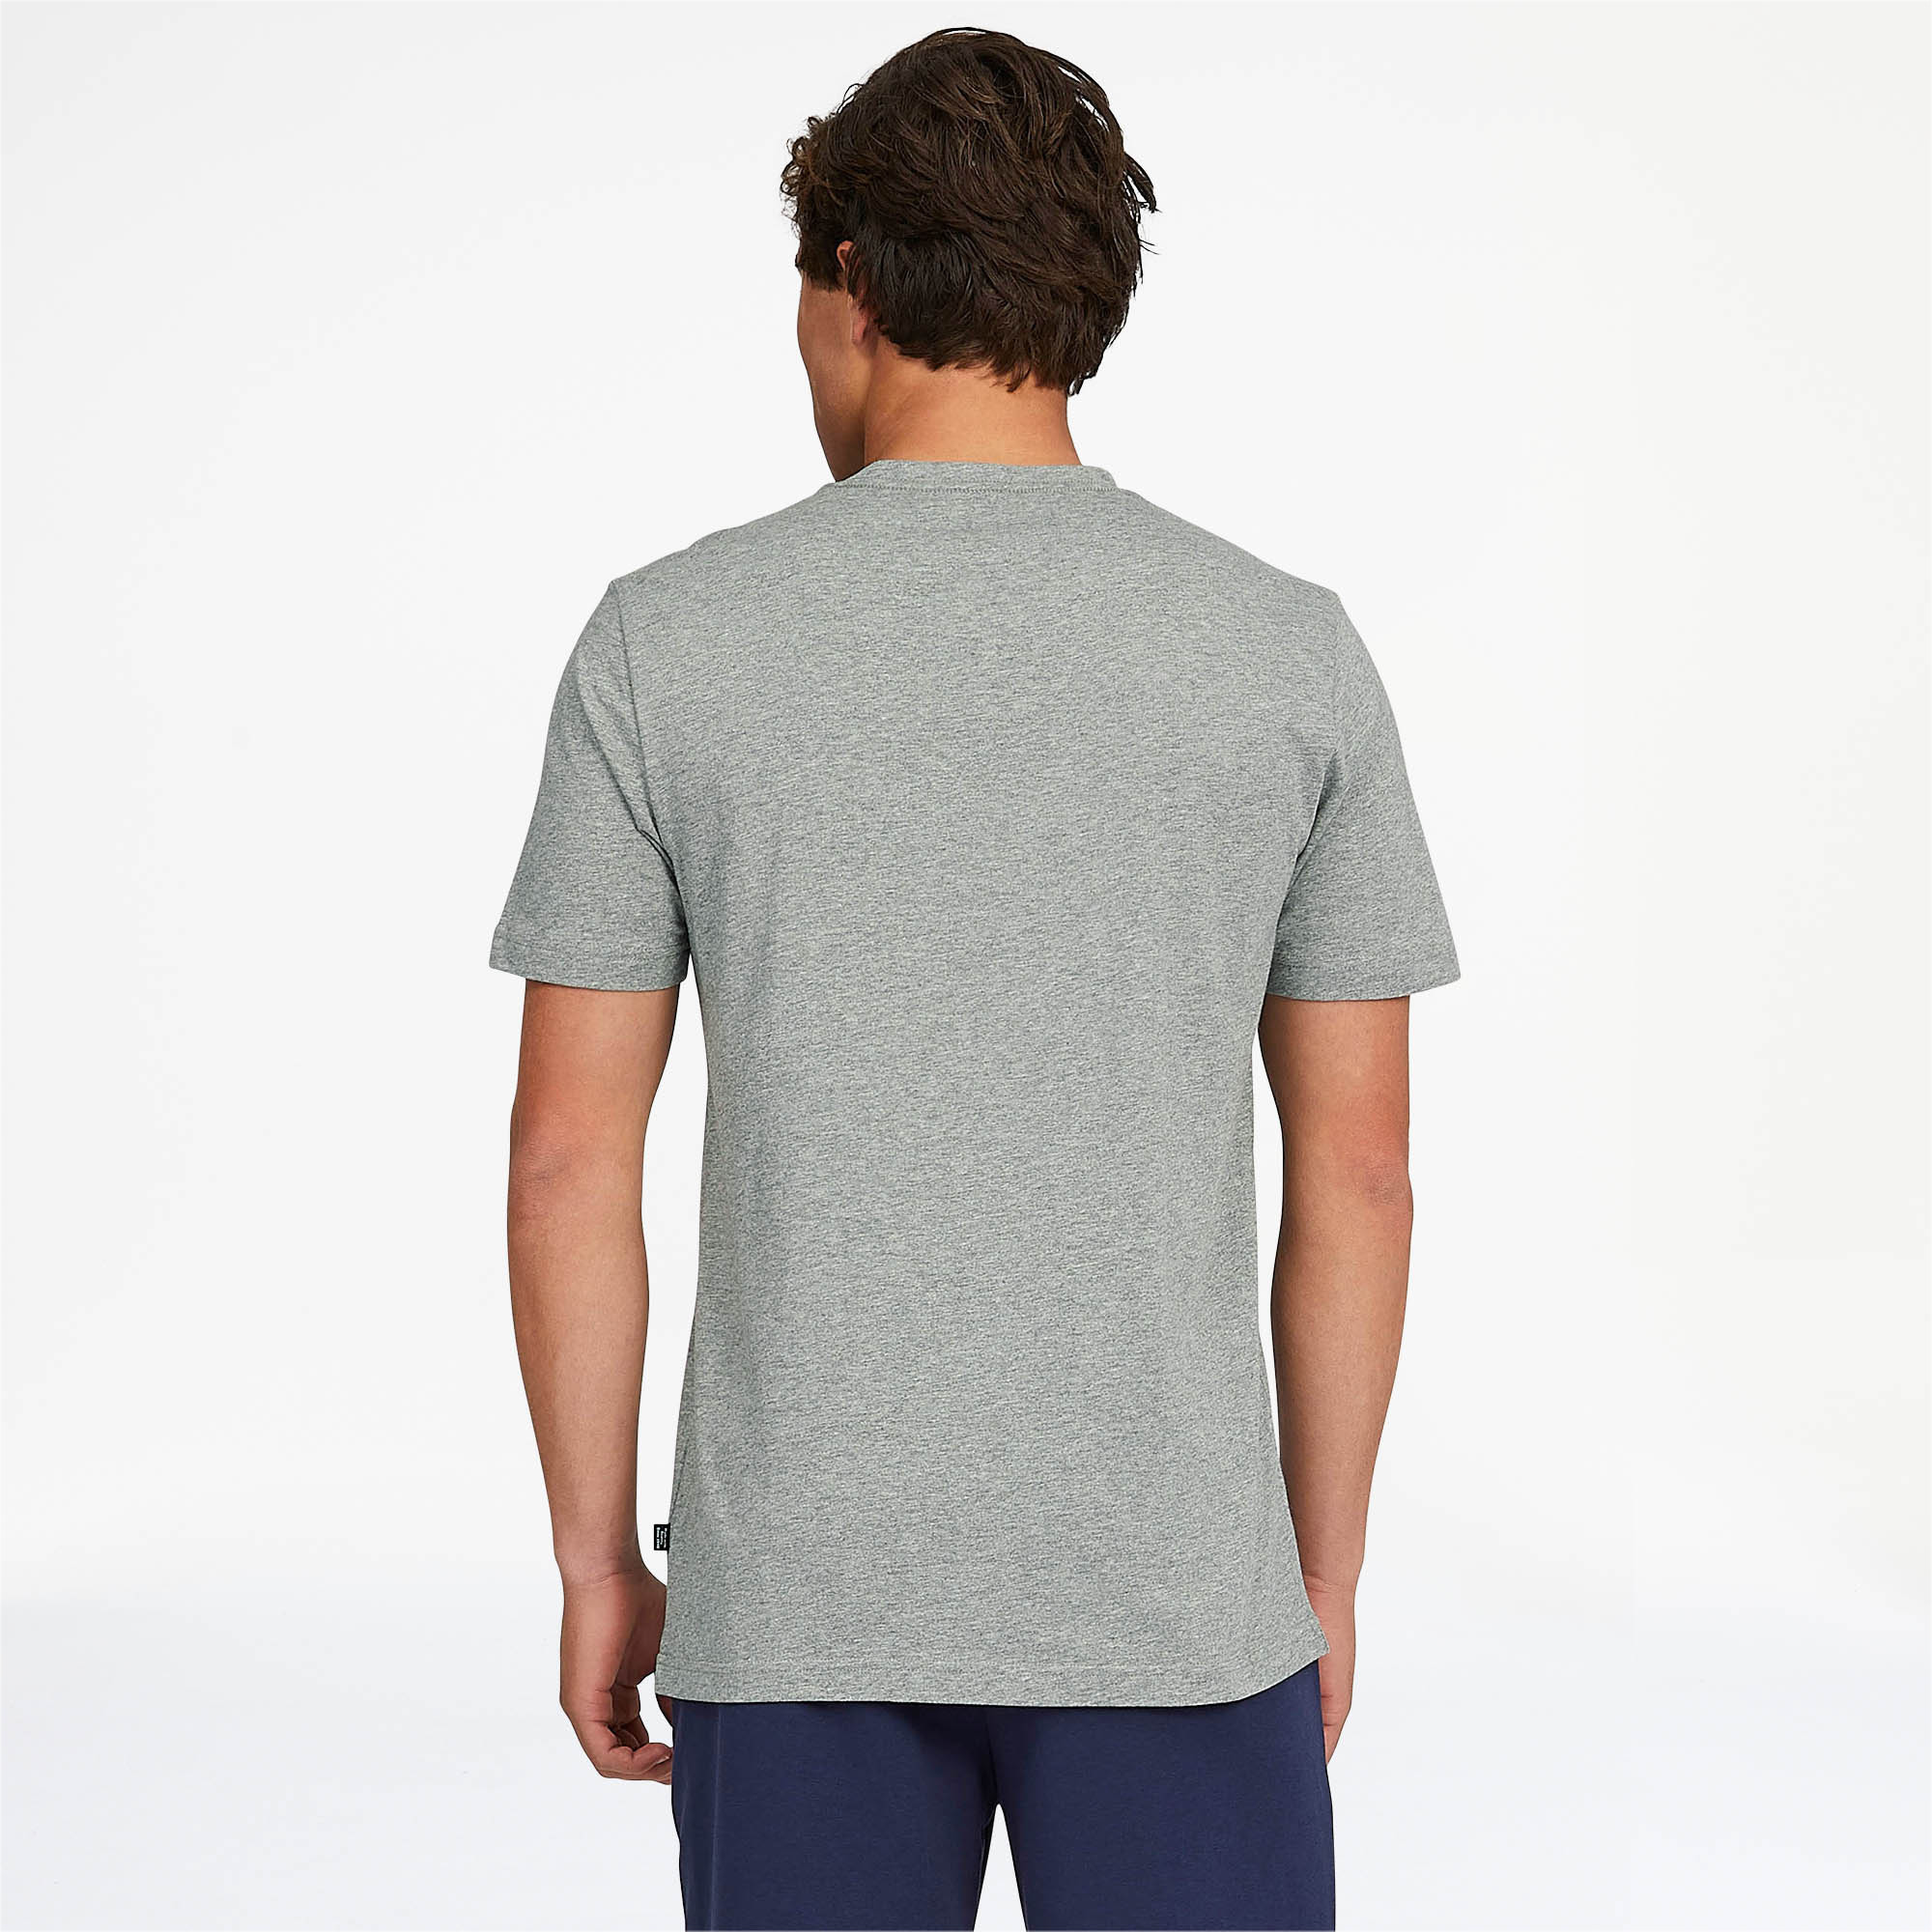 PUMA-Essentials-Men-039-s-V-Neck-Tee-Men-Tee-Basics thumbnail 16